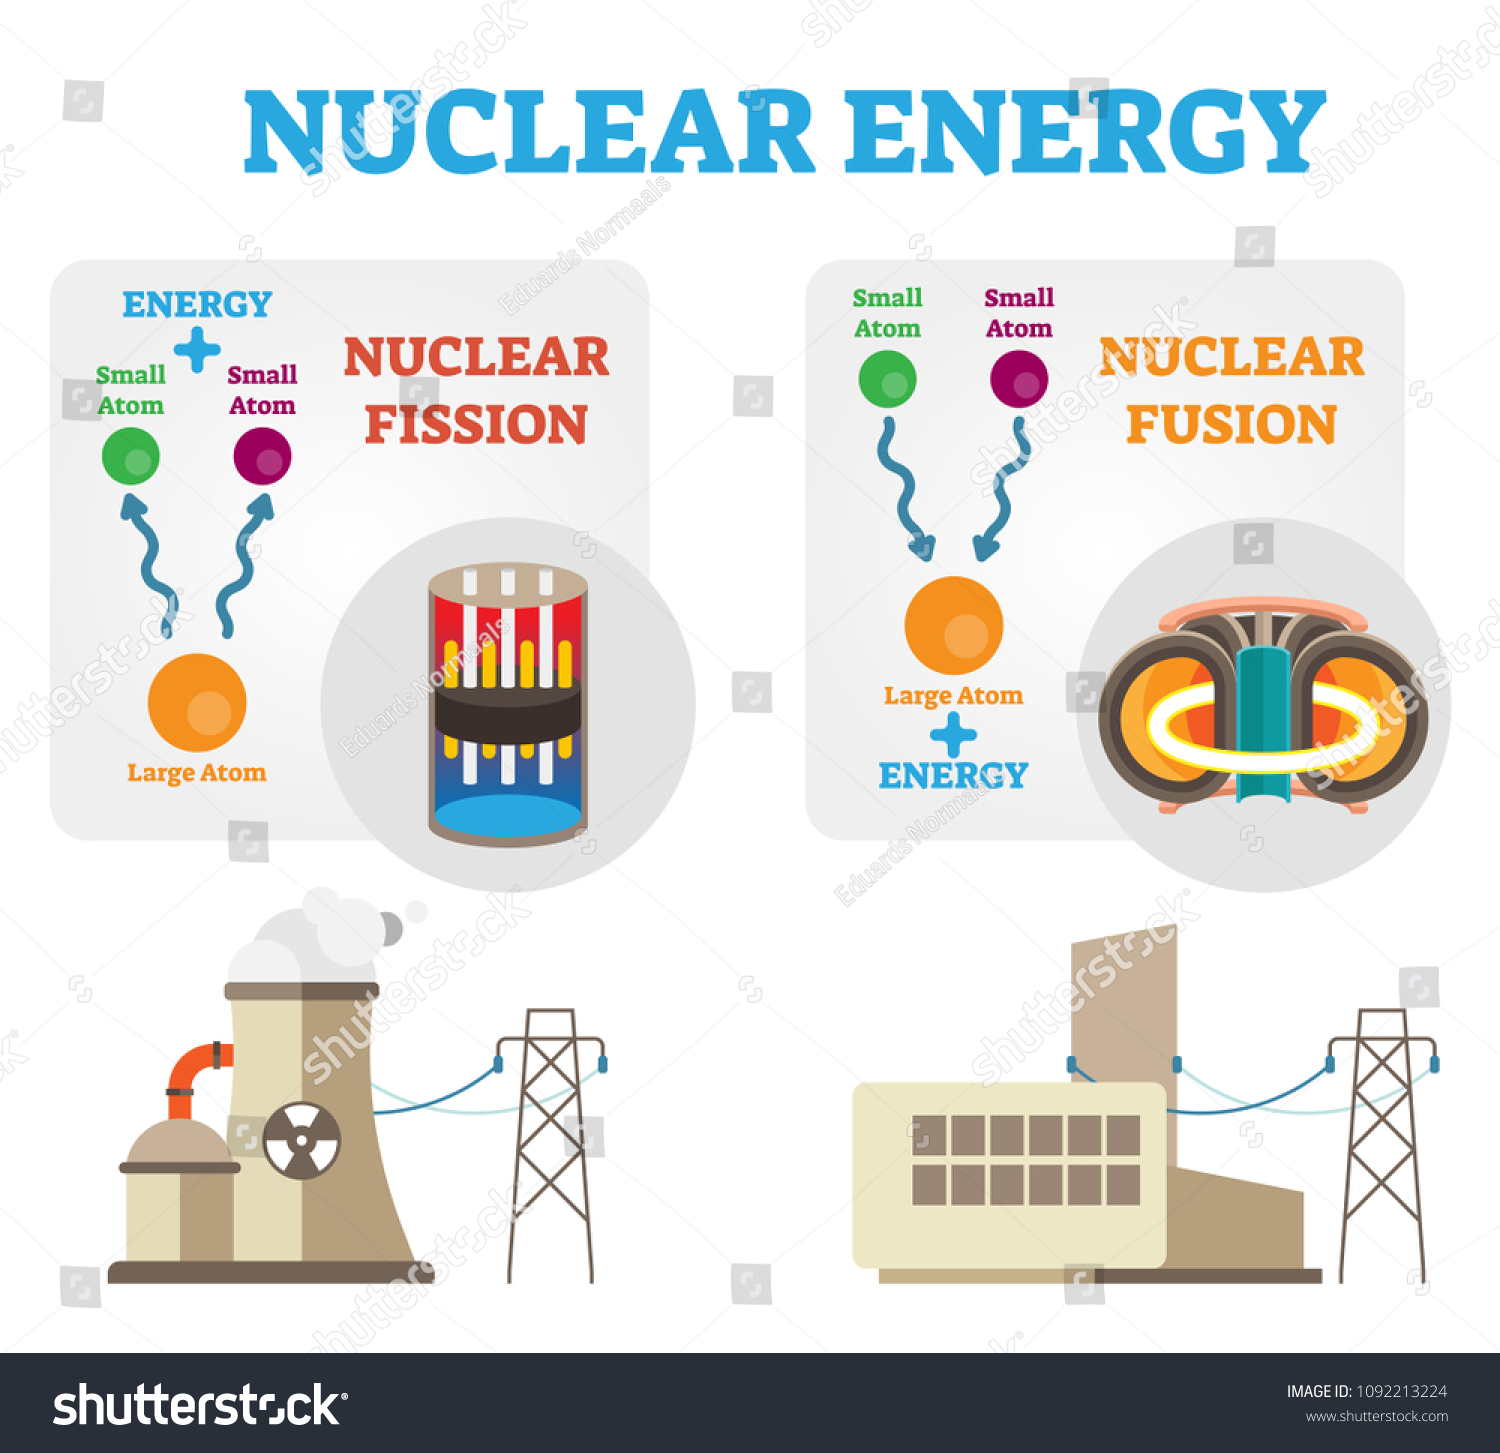 nuclear energy fission fusion concept diagram stock vector royalty rh shutterstock com Nuclear Fusion Reactor Nuclear Fusion in Stars